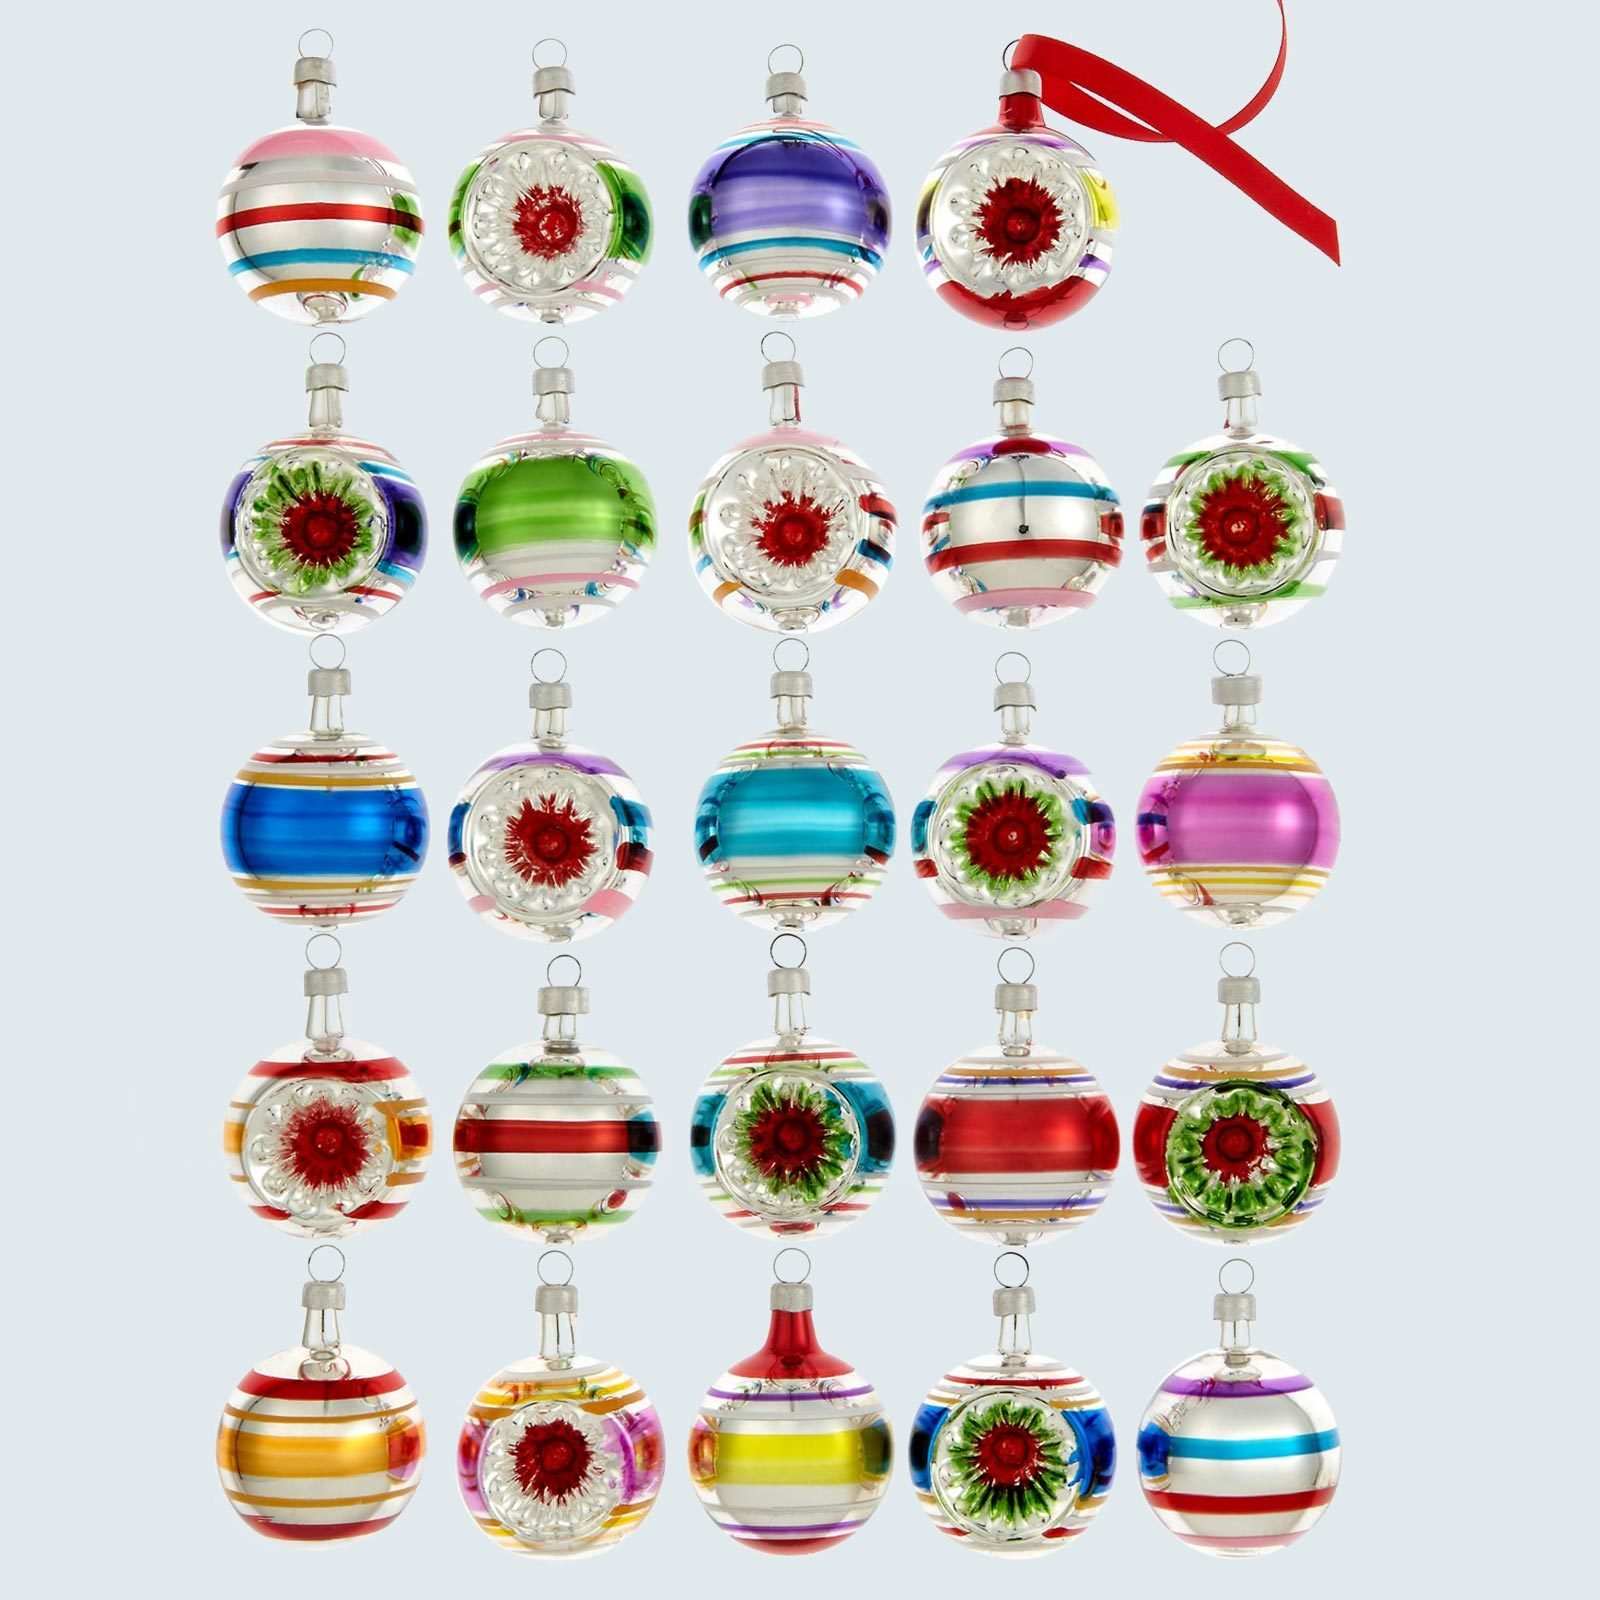 Glass mini ornaments